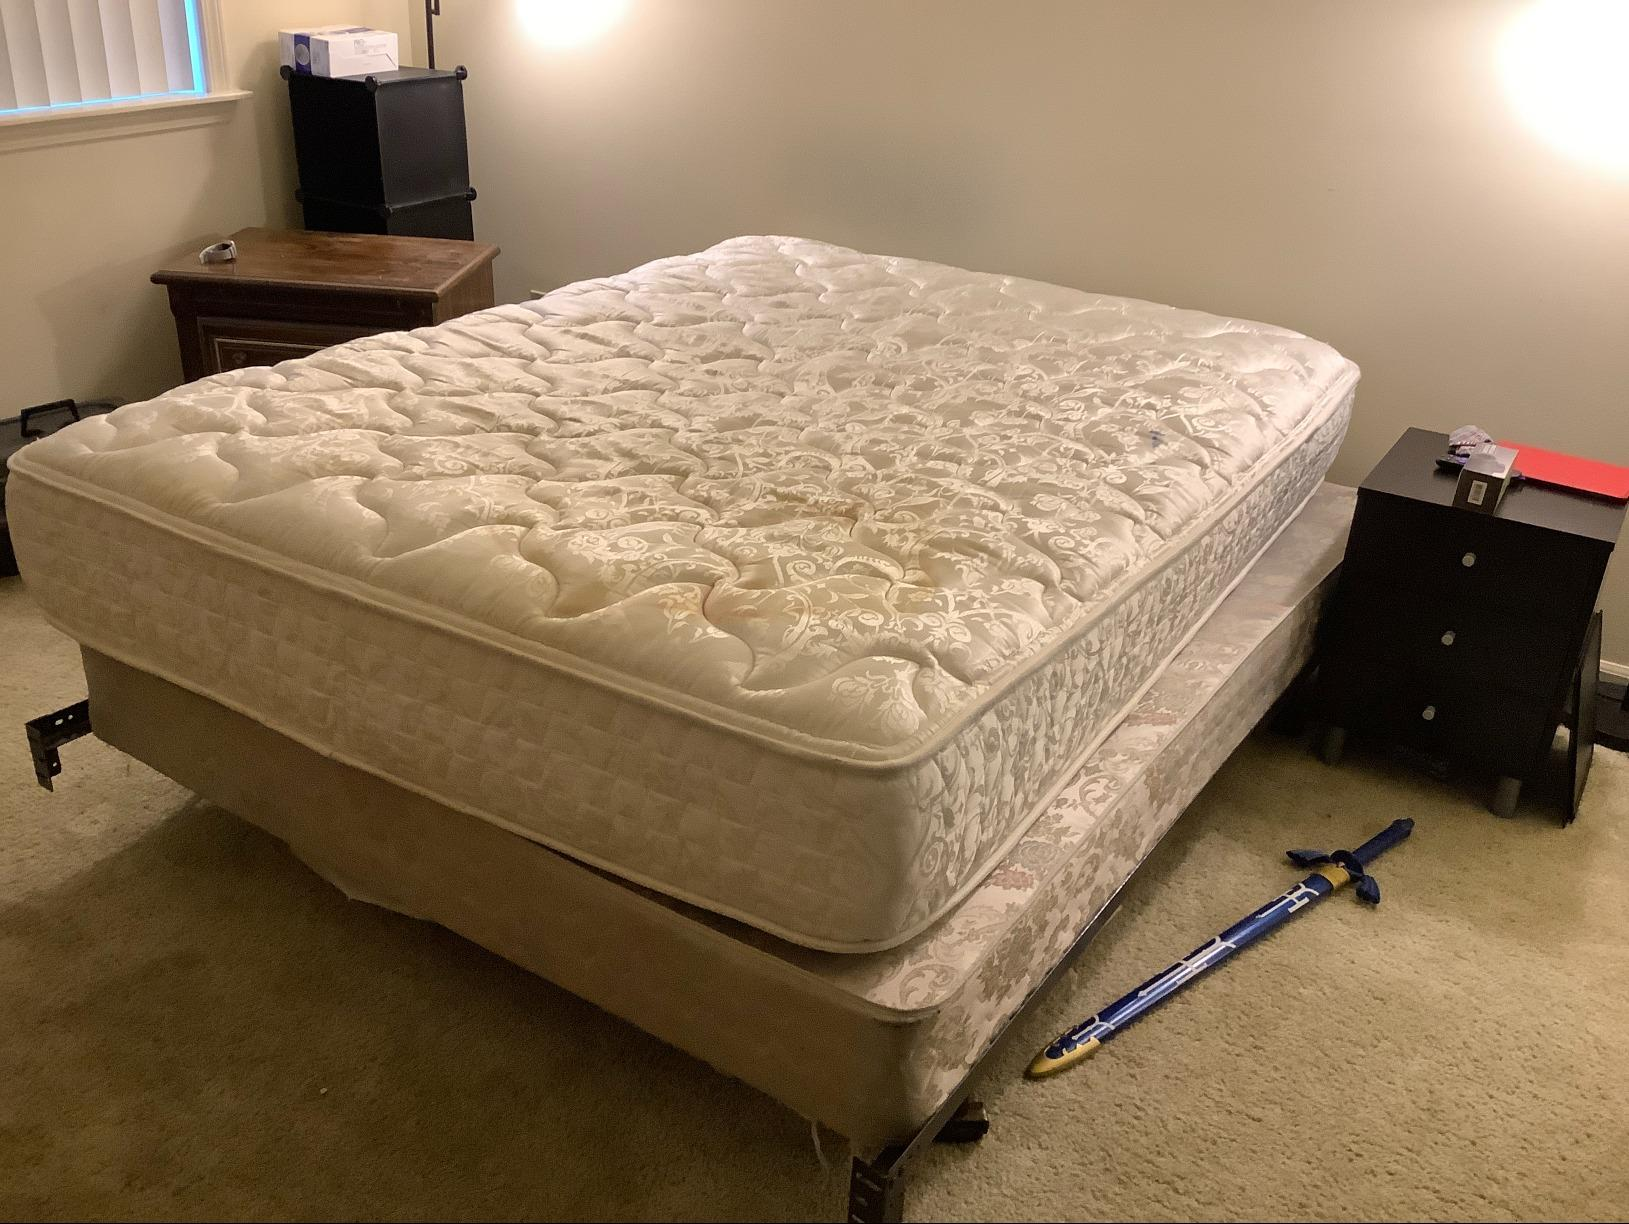 Mattress Removal in Roselle, IL - Before Photo